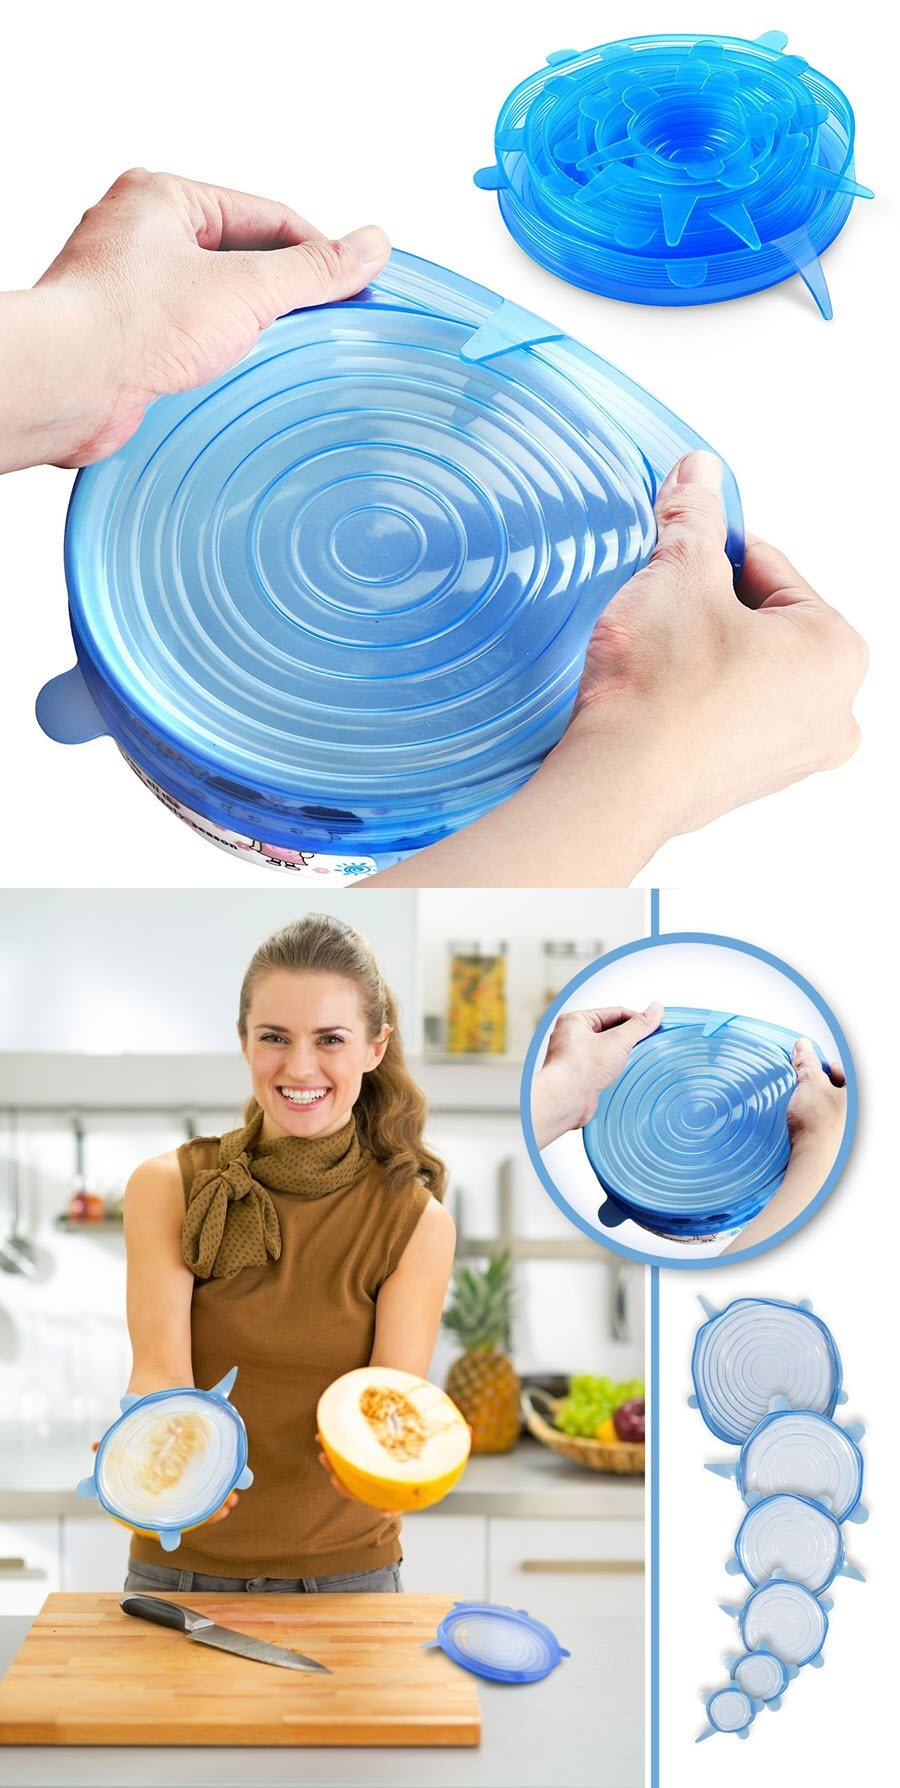 b819edef42 This ultra-convenient clip-on kitchen strainer is an inventive